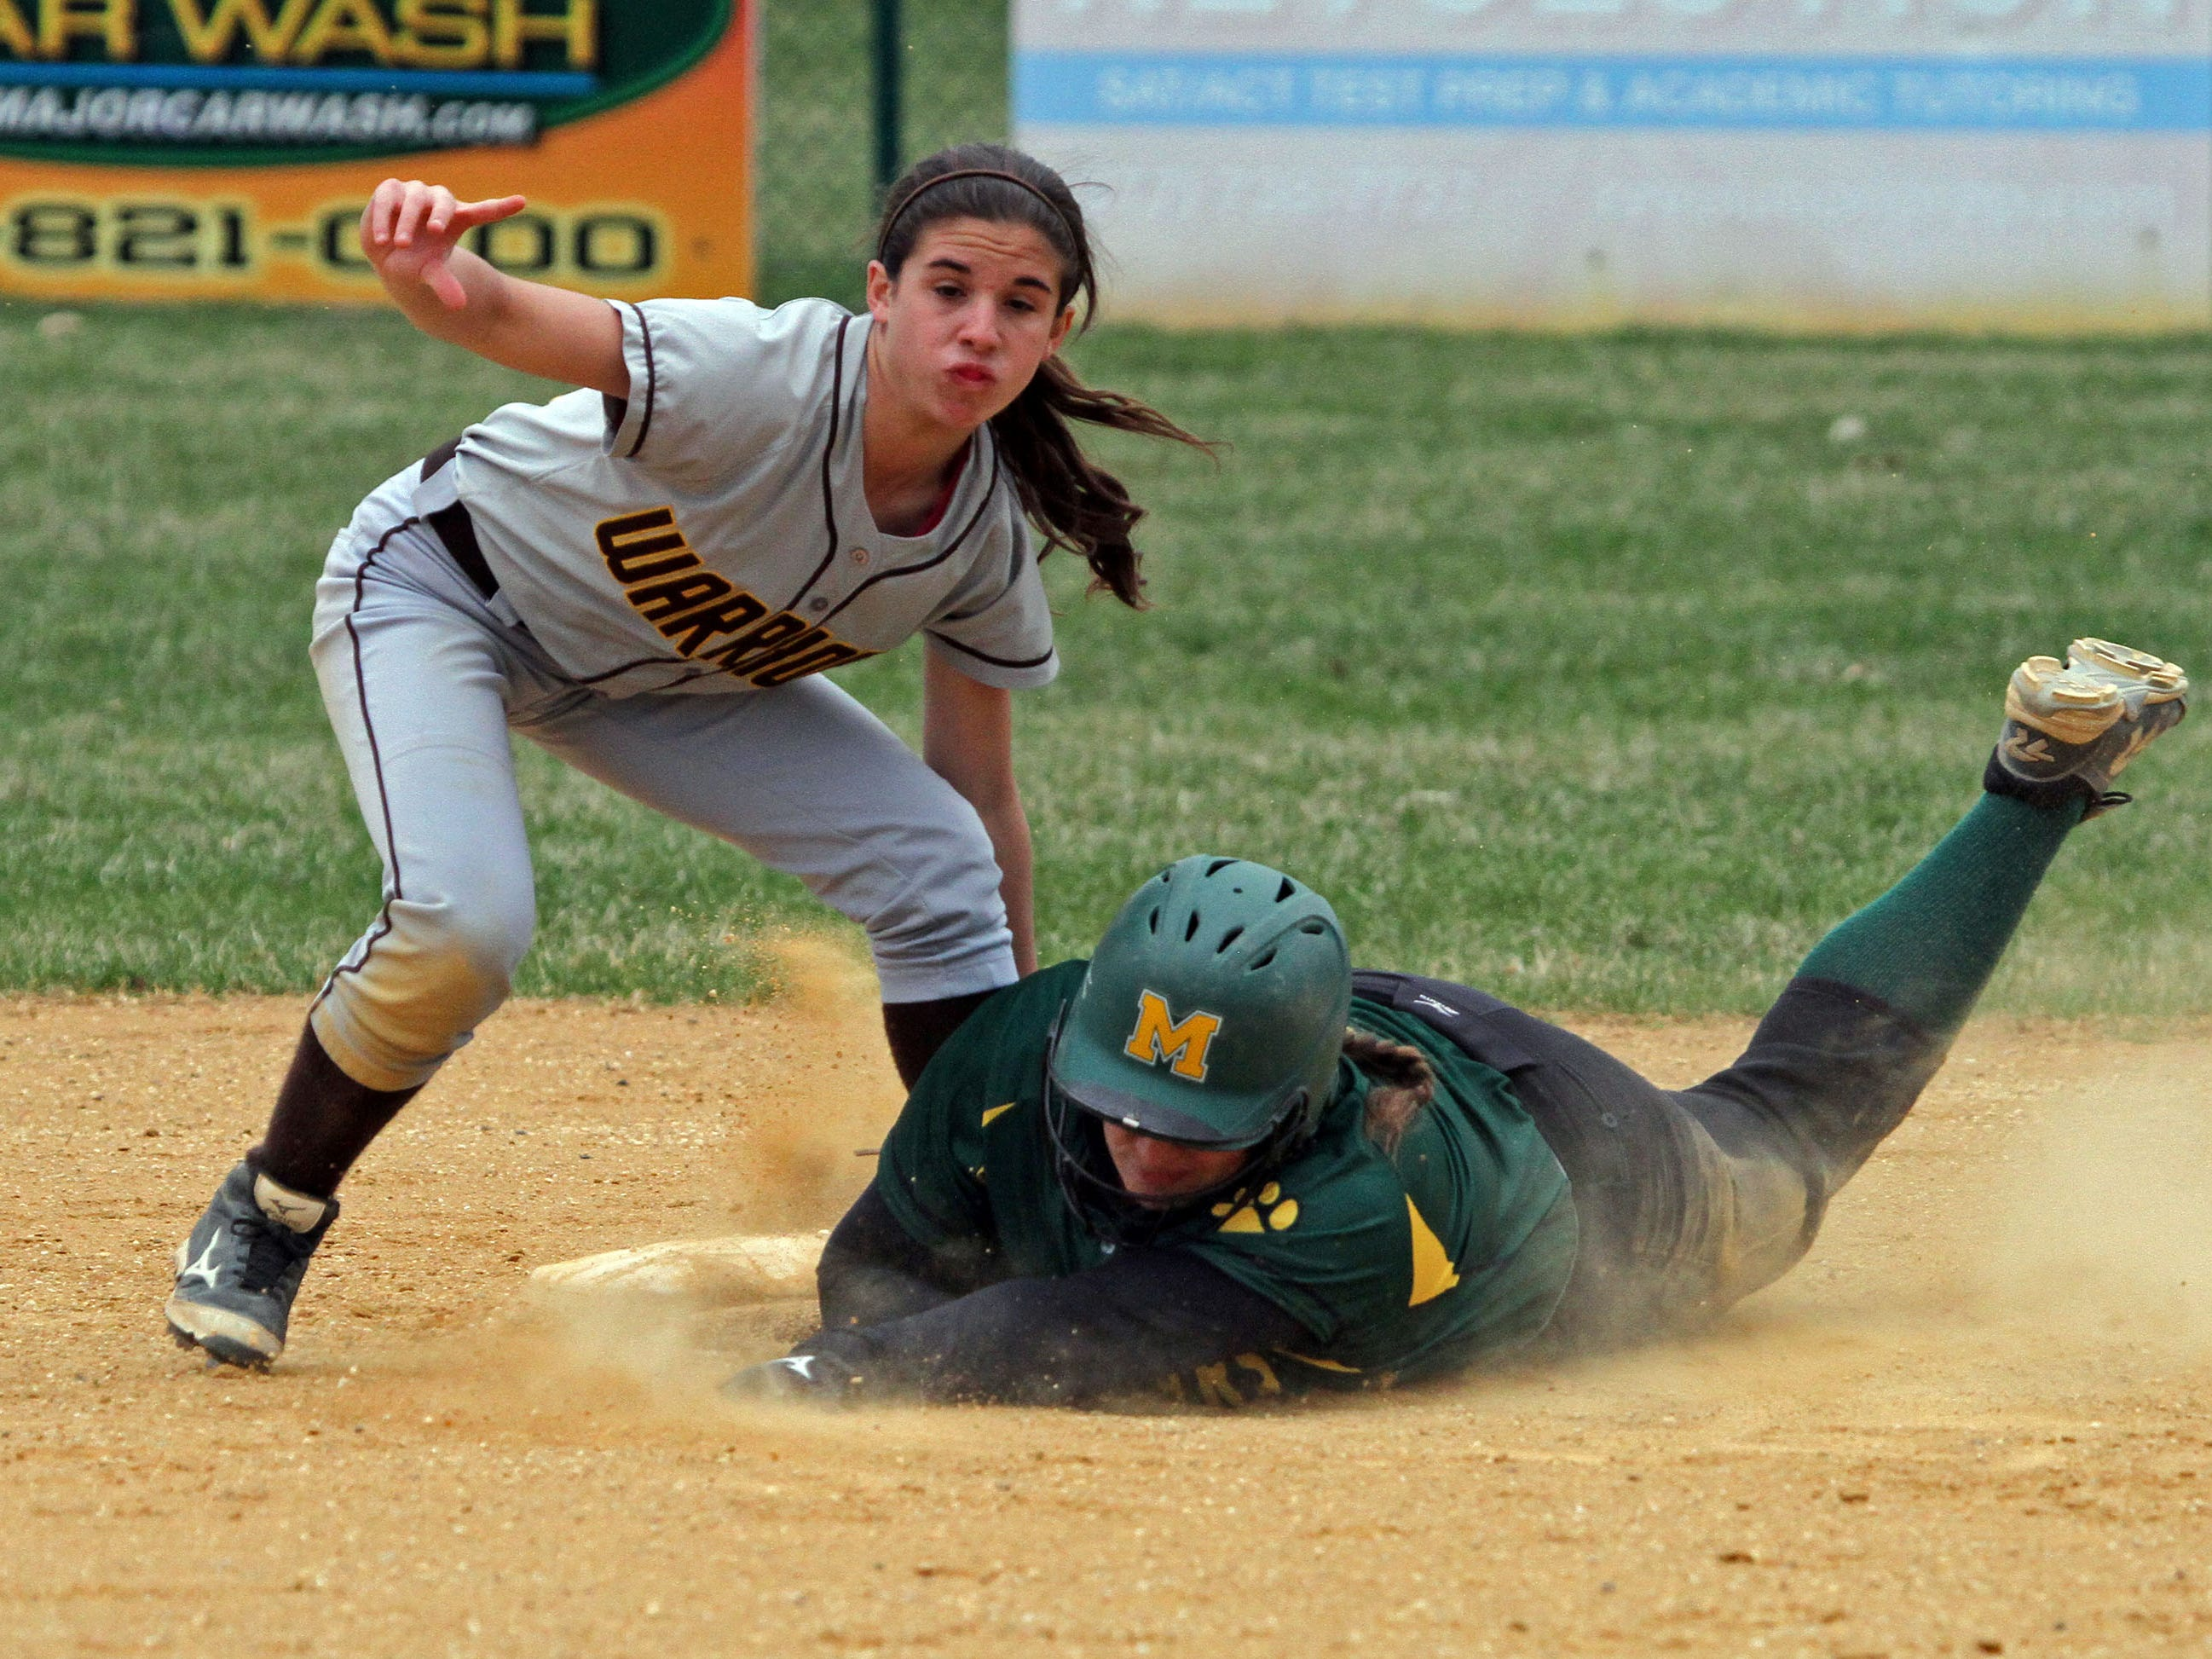 Montgomery's Gillian O'Connor is out by Watchung Hills' Tina Zoppi, as she tries to steal second base. This is action of Watchung Hills at Montgomery in girls softball.